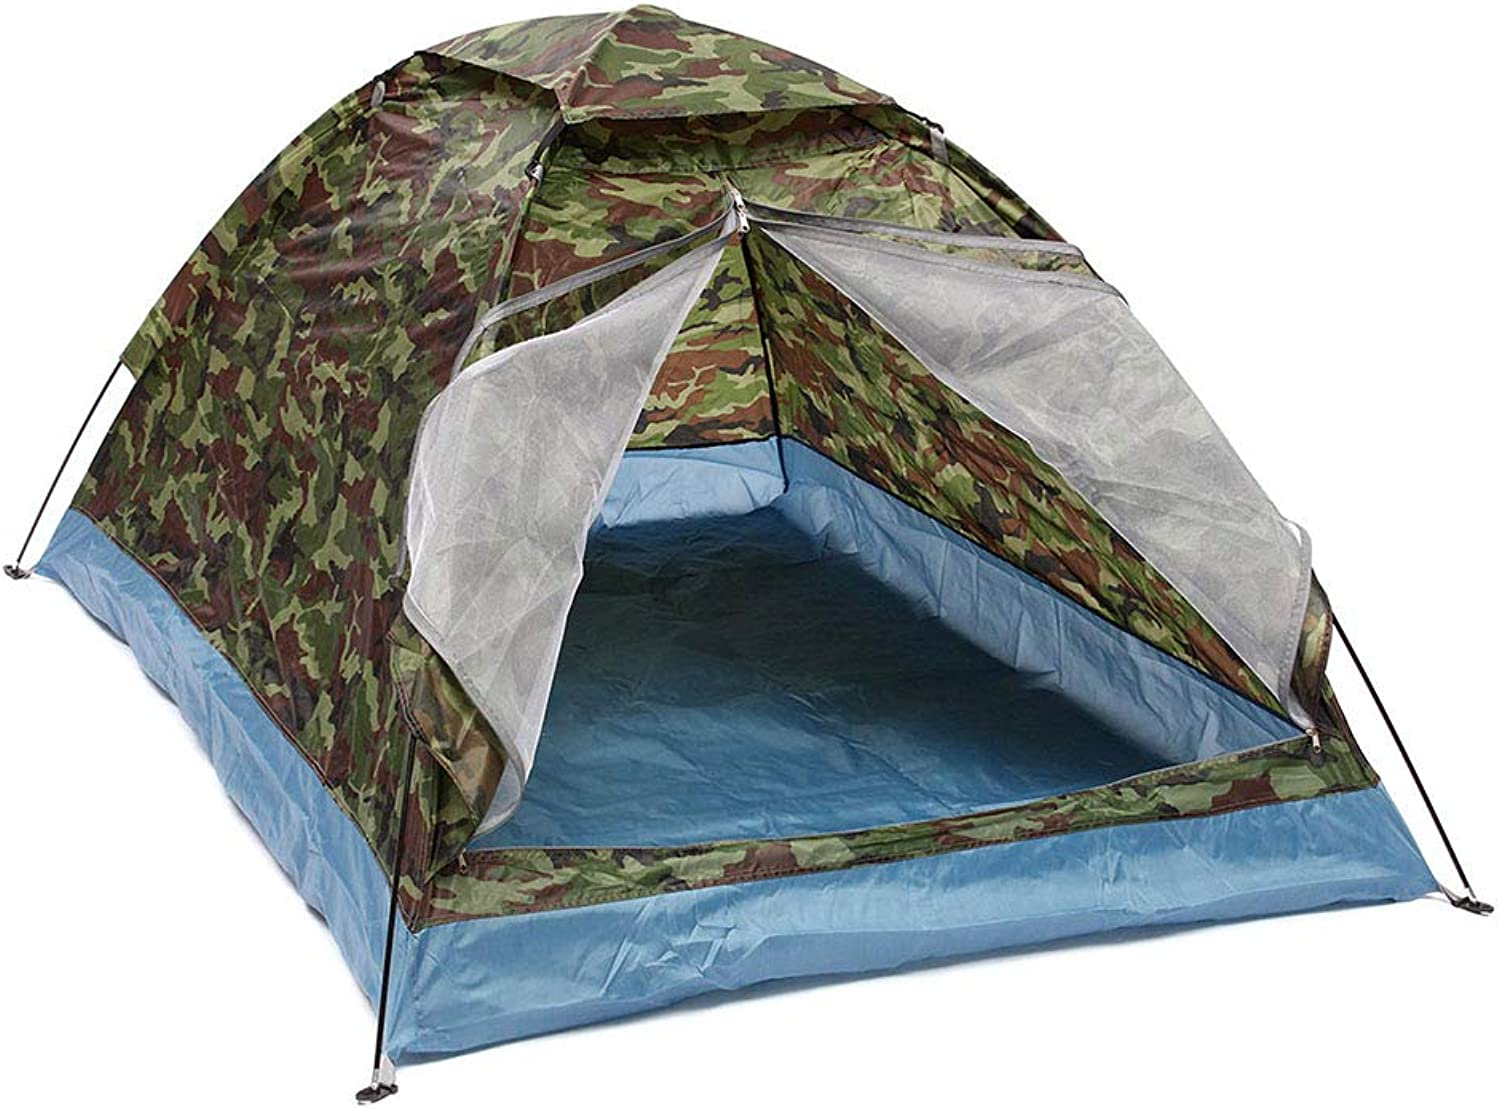 Outdoor Camping Tent 23 Person Beach Tent Portable Folding Waterproof Dome Tent for Hiking Durable Sets Up in Seconds with Carry Bag